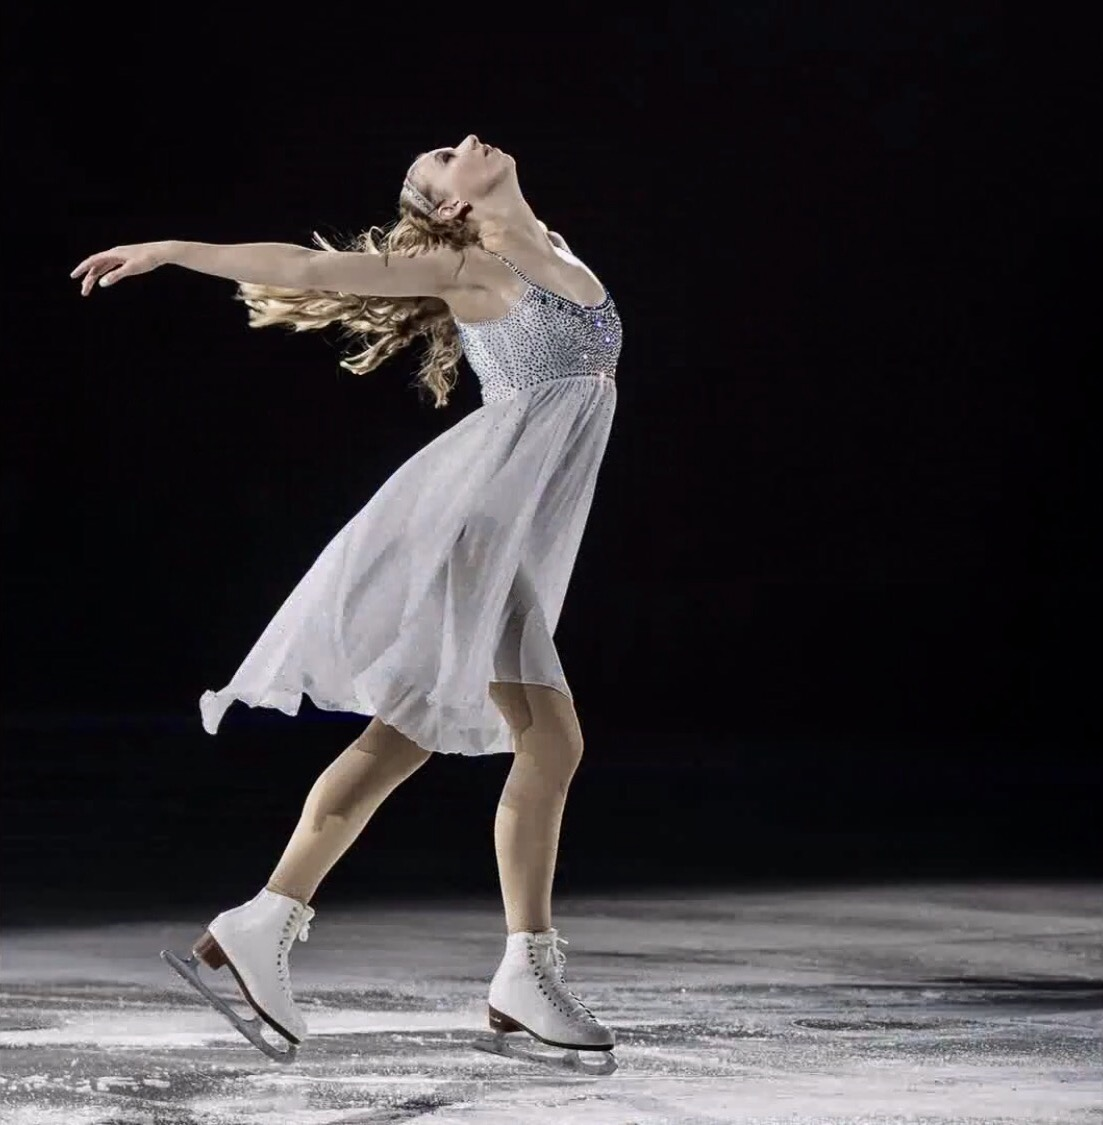 Interview with American figure skater Polina Edmunds